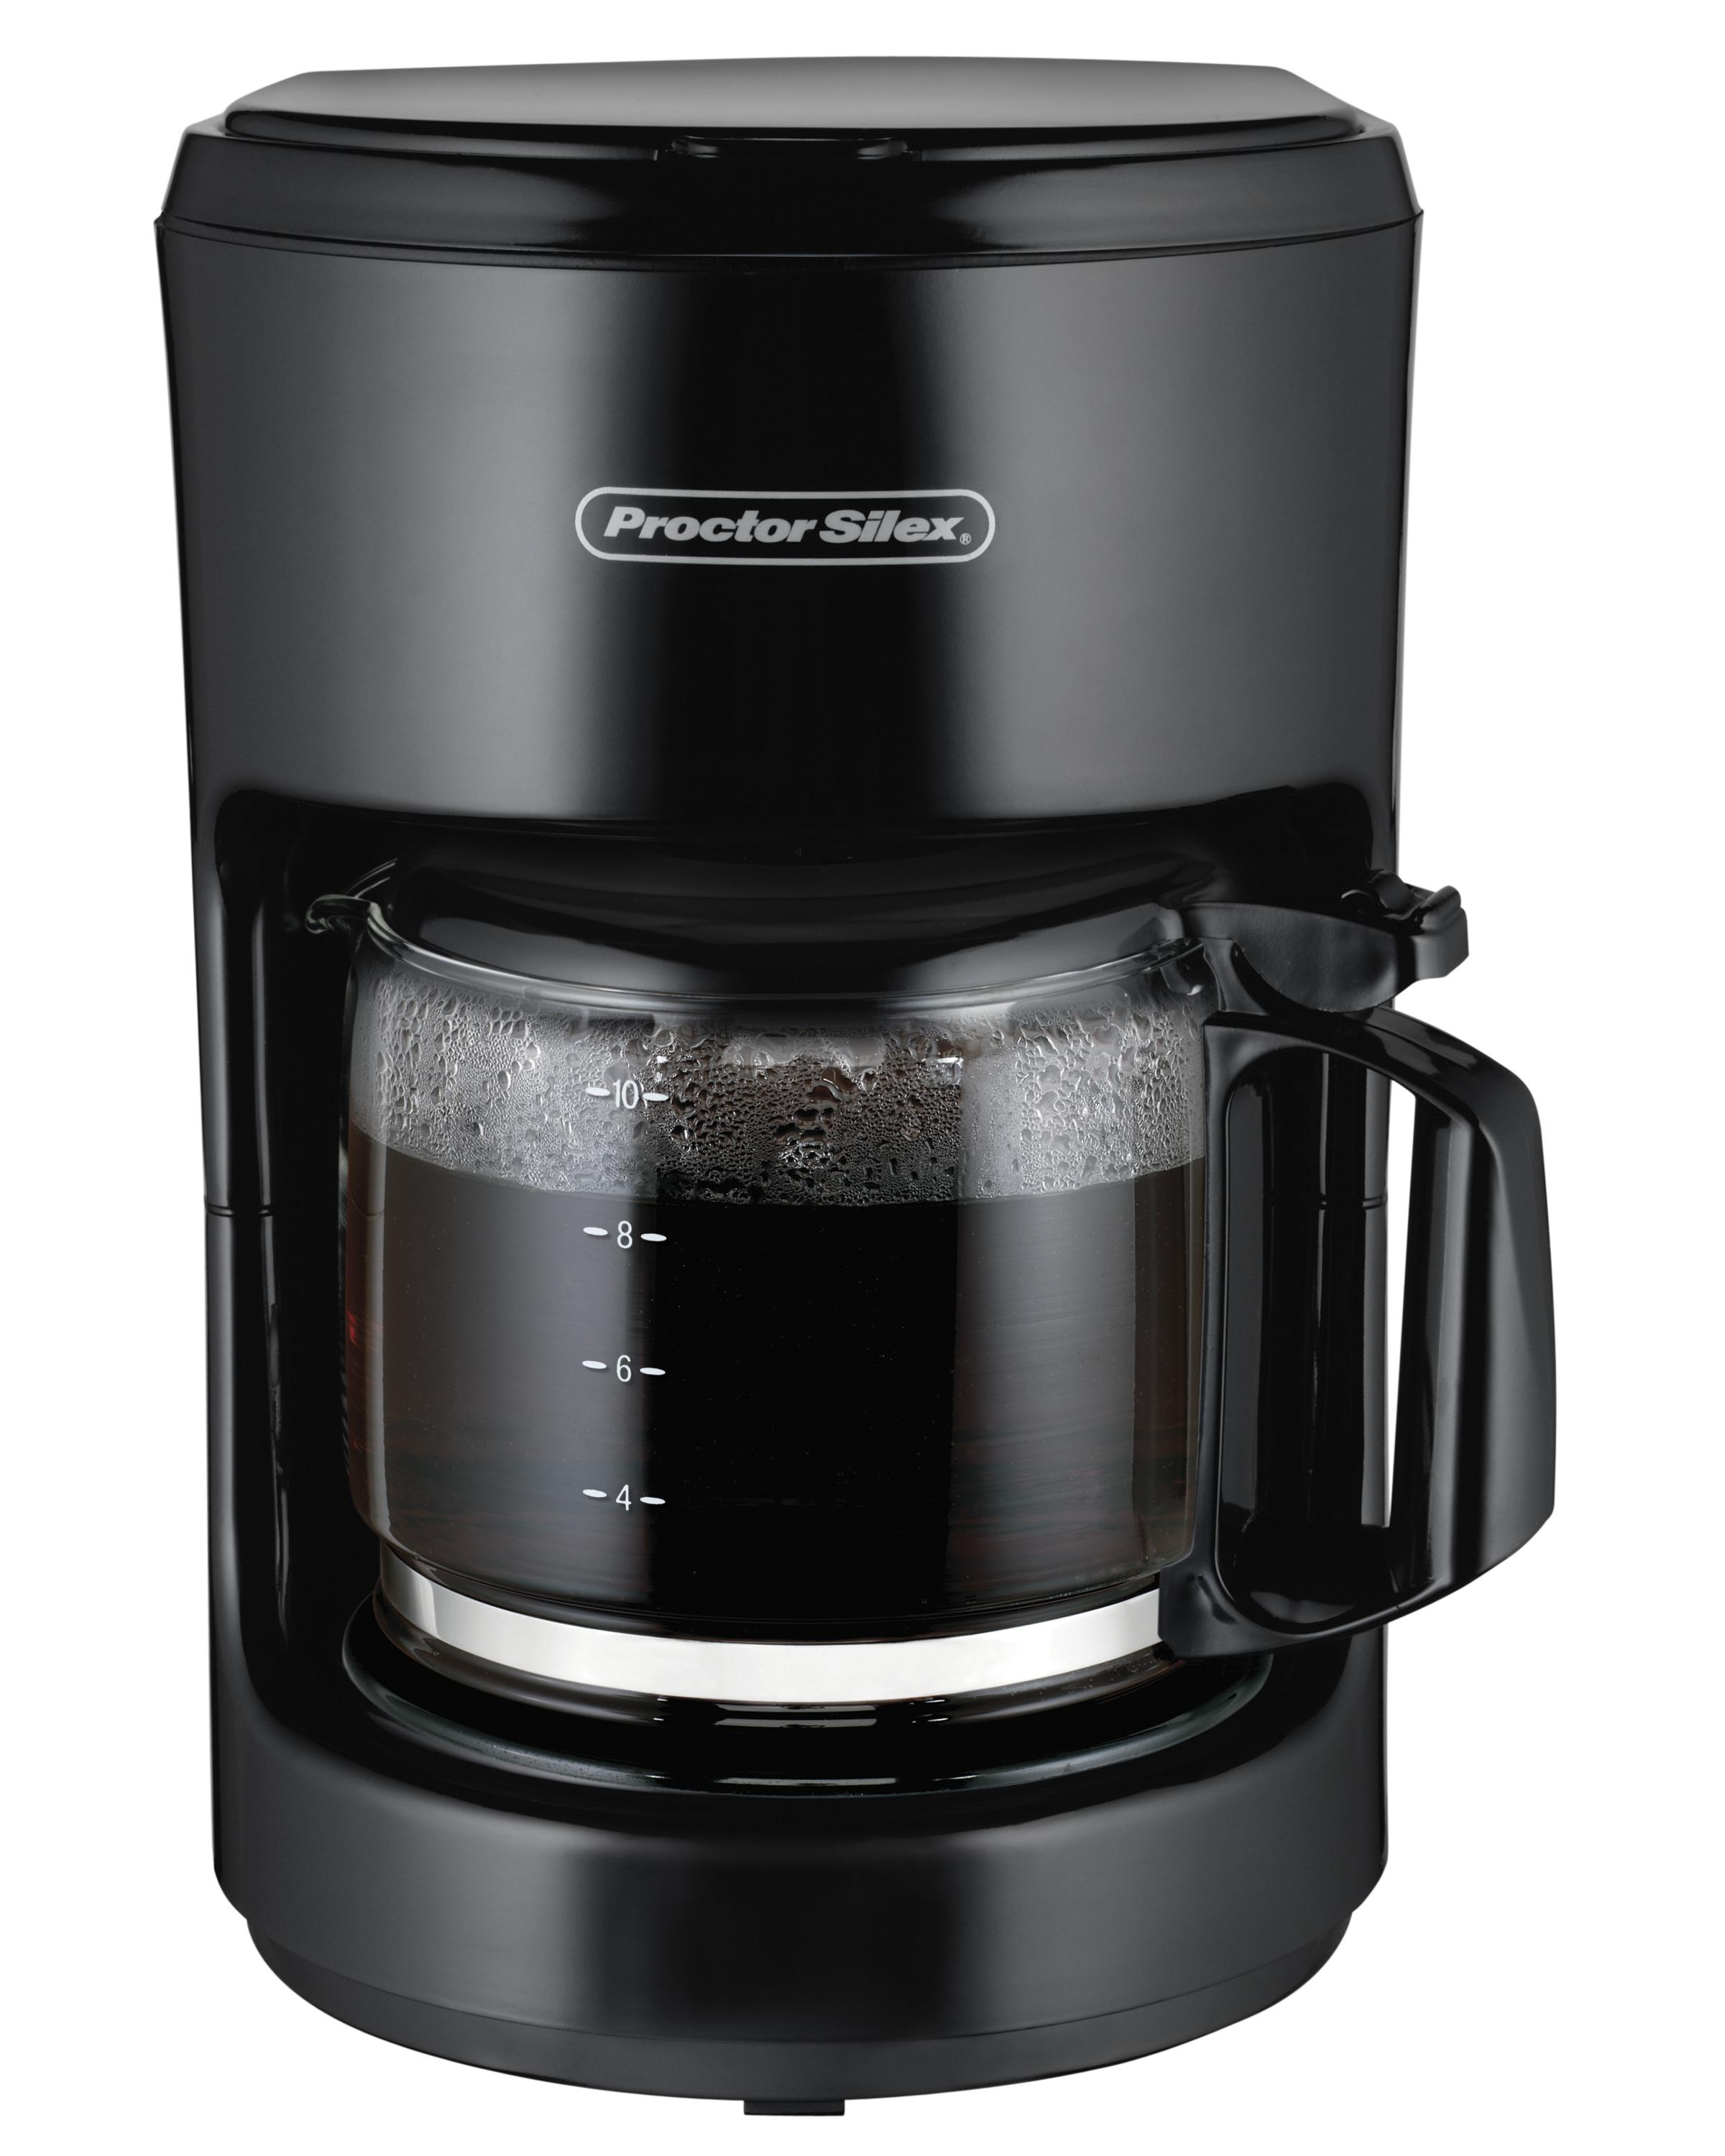 Bunn Coffee Maker Dripping : Amazon.com: Proctor-Silex 10-Cup Coffee Maker (48351): Coffeemaker Carafes: Kitchen & Dining